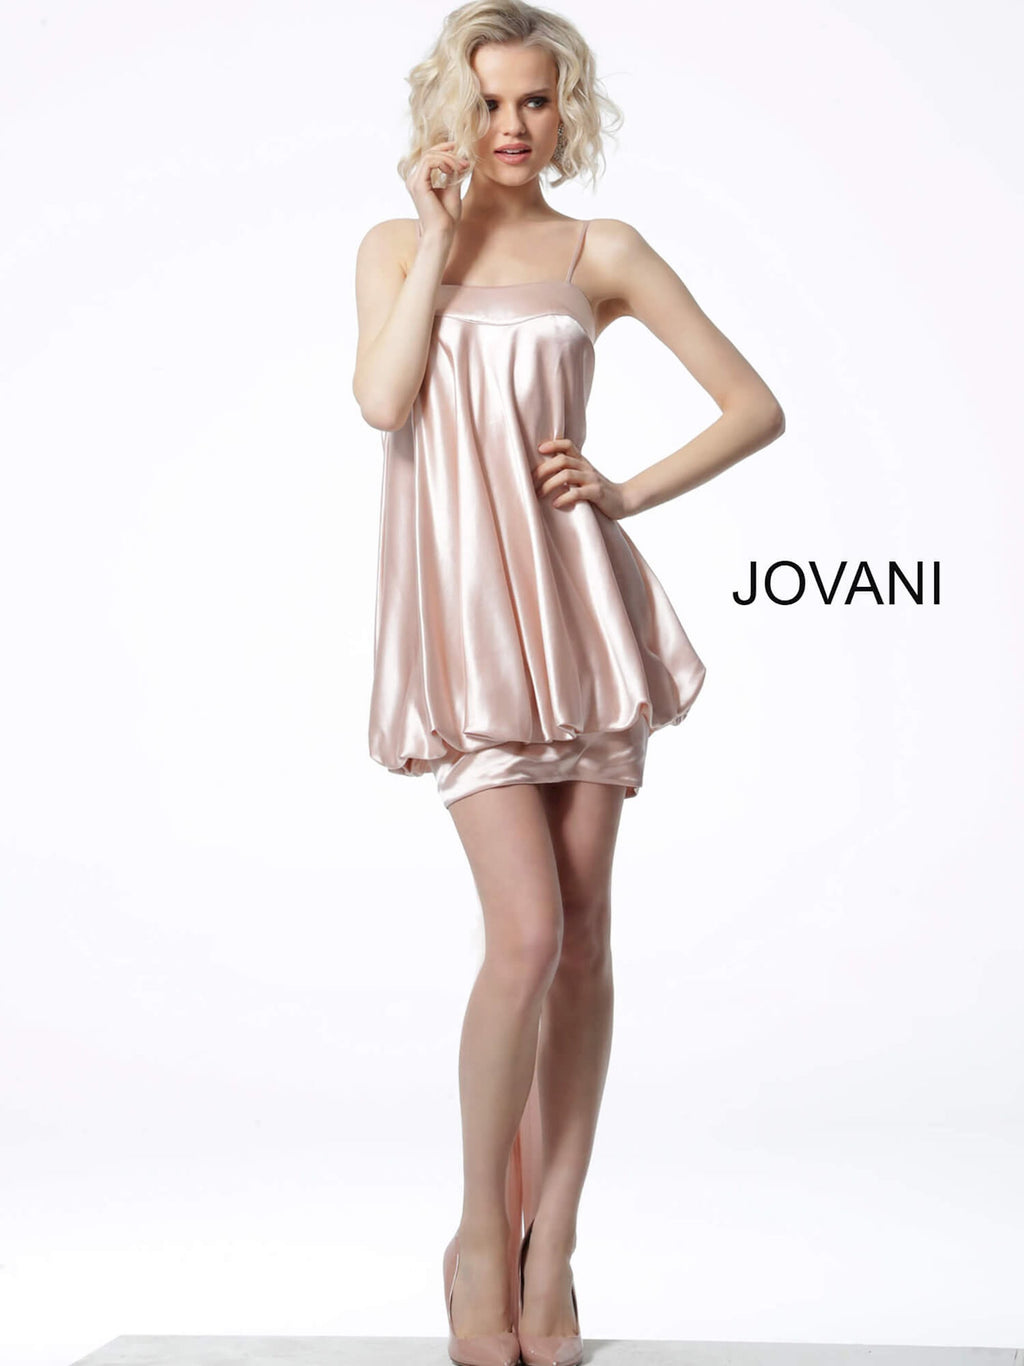 JOVANI 66431 Satin Baby Doll Dress - CYC Boutique